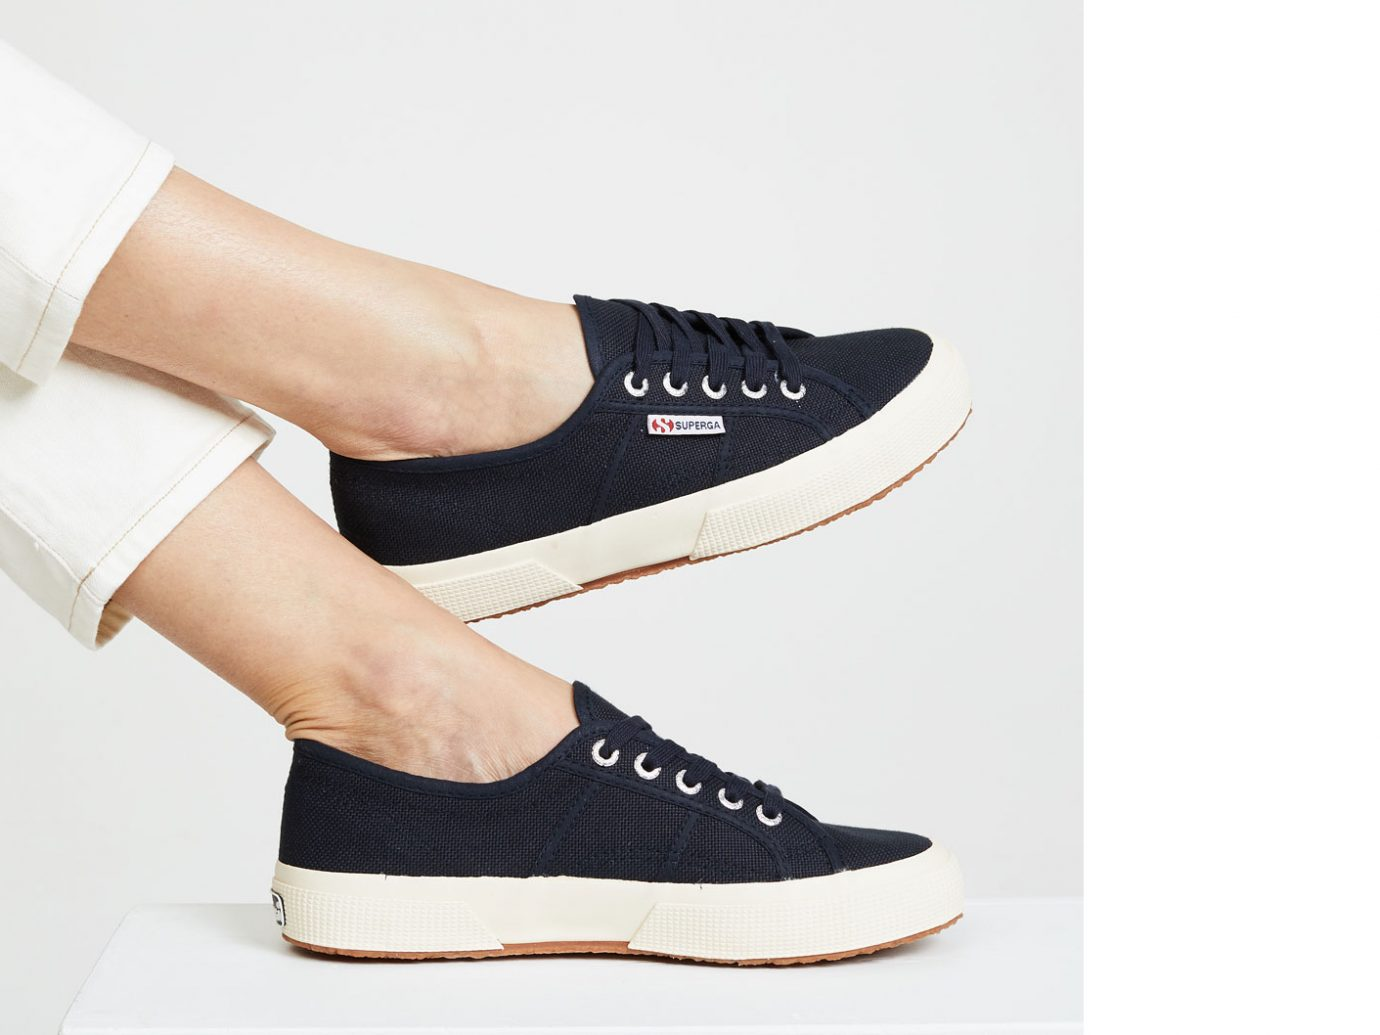 679b1cead7d The Most Stylish Walking Shoes for Women (2019)